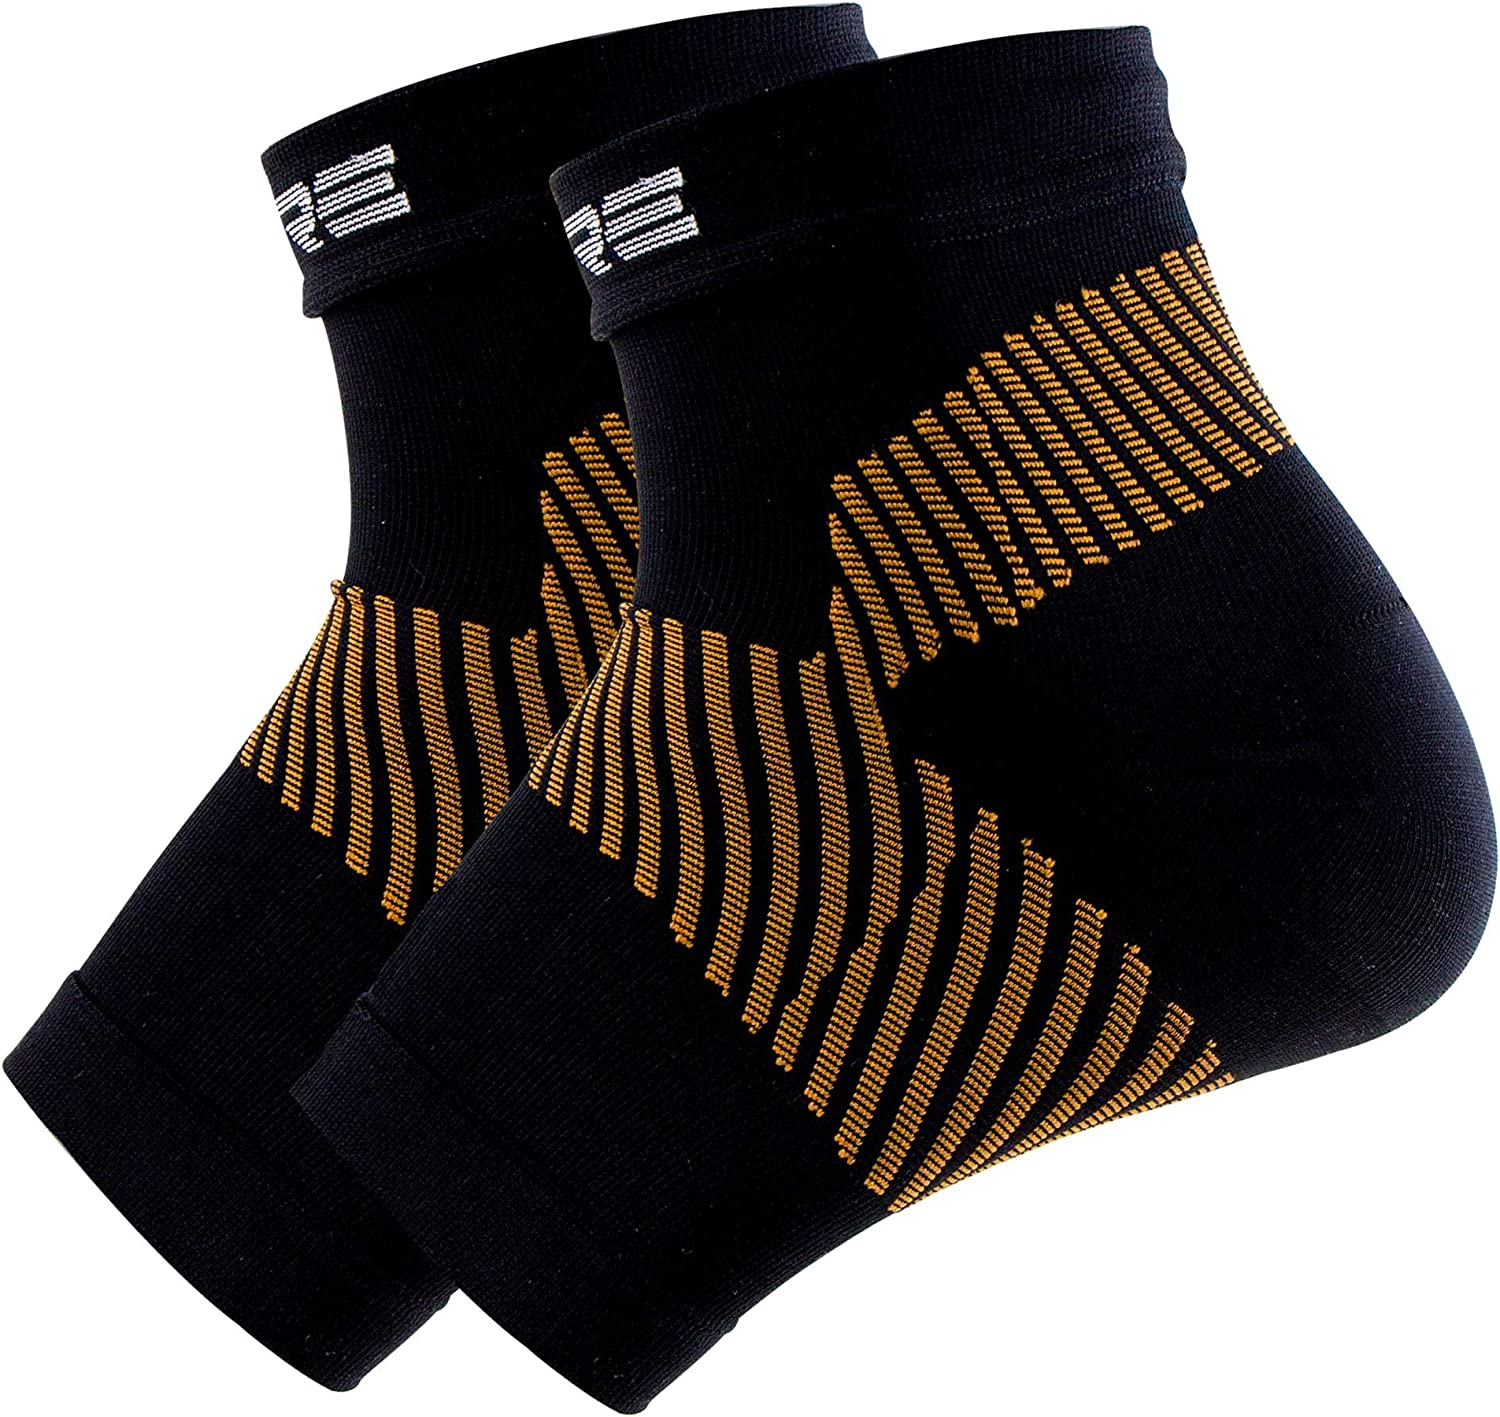 Pure Athlete Copper Special Ranking TOP13 price for a limited time Plantar Fasciitis Compression Sleeves - Reli